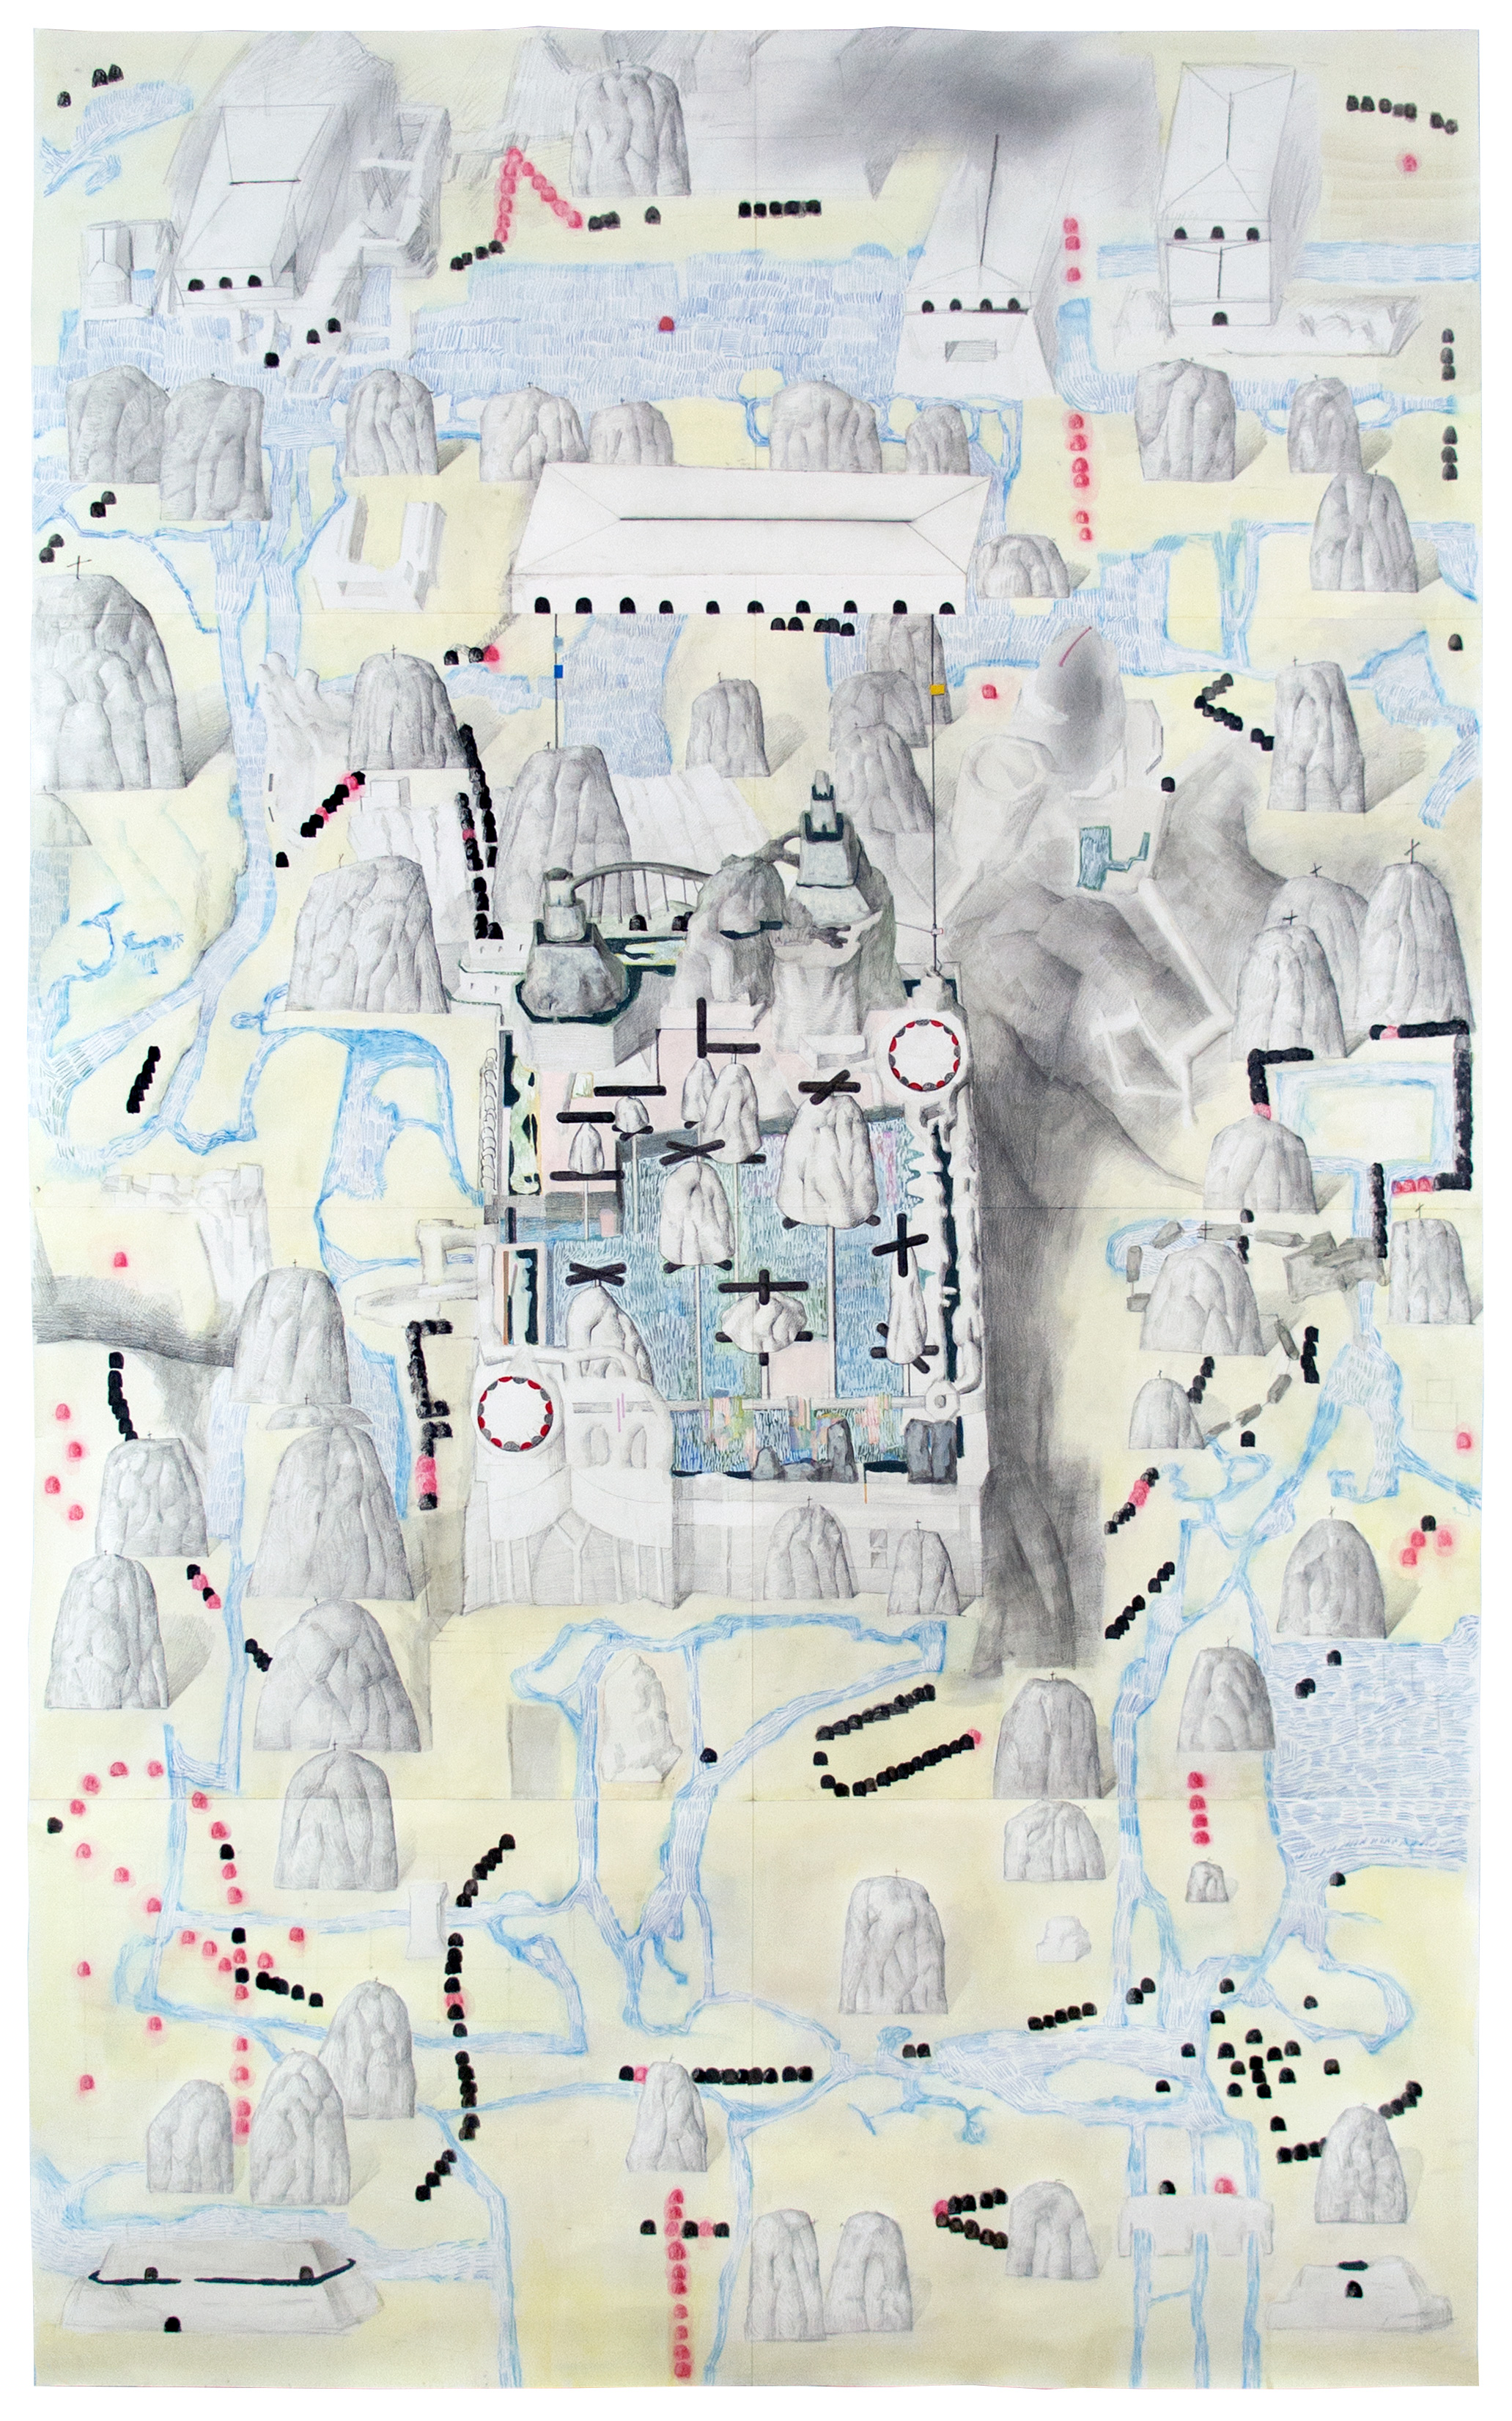 Ha Ninh Pham_E4.2 [Institute of Volume]_ Graphite, watercolor, pastel and acrylic marker on paper_2018_56x35in